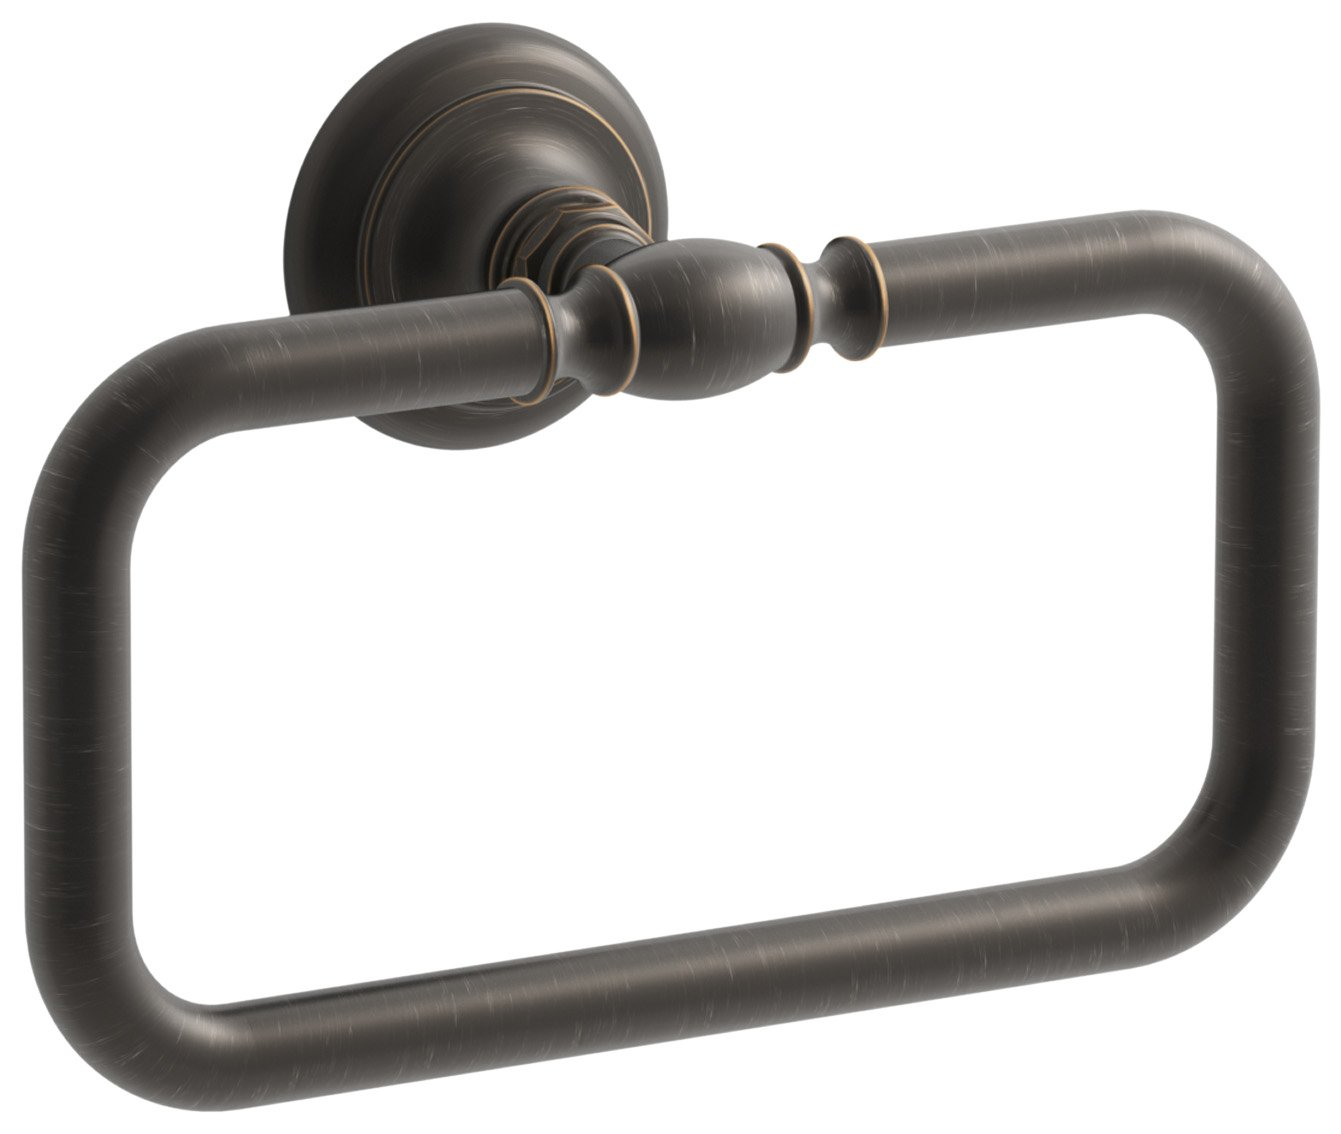 KOHLER K-72571-2BZ Artifacts Towel ring, Oil-Rubbed Bronze by Kohler